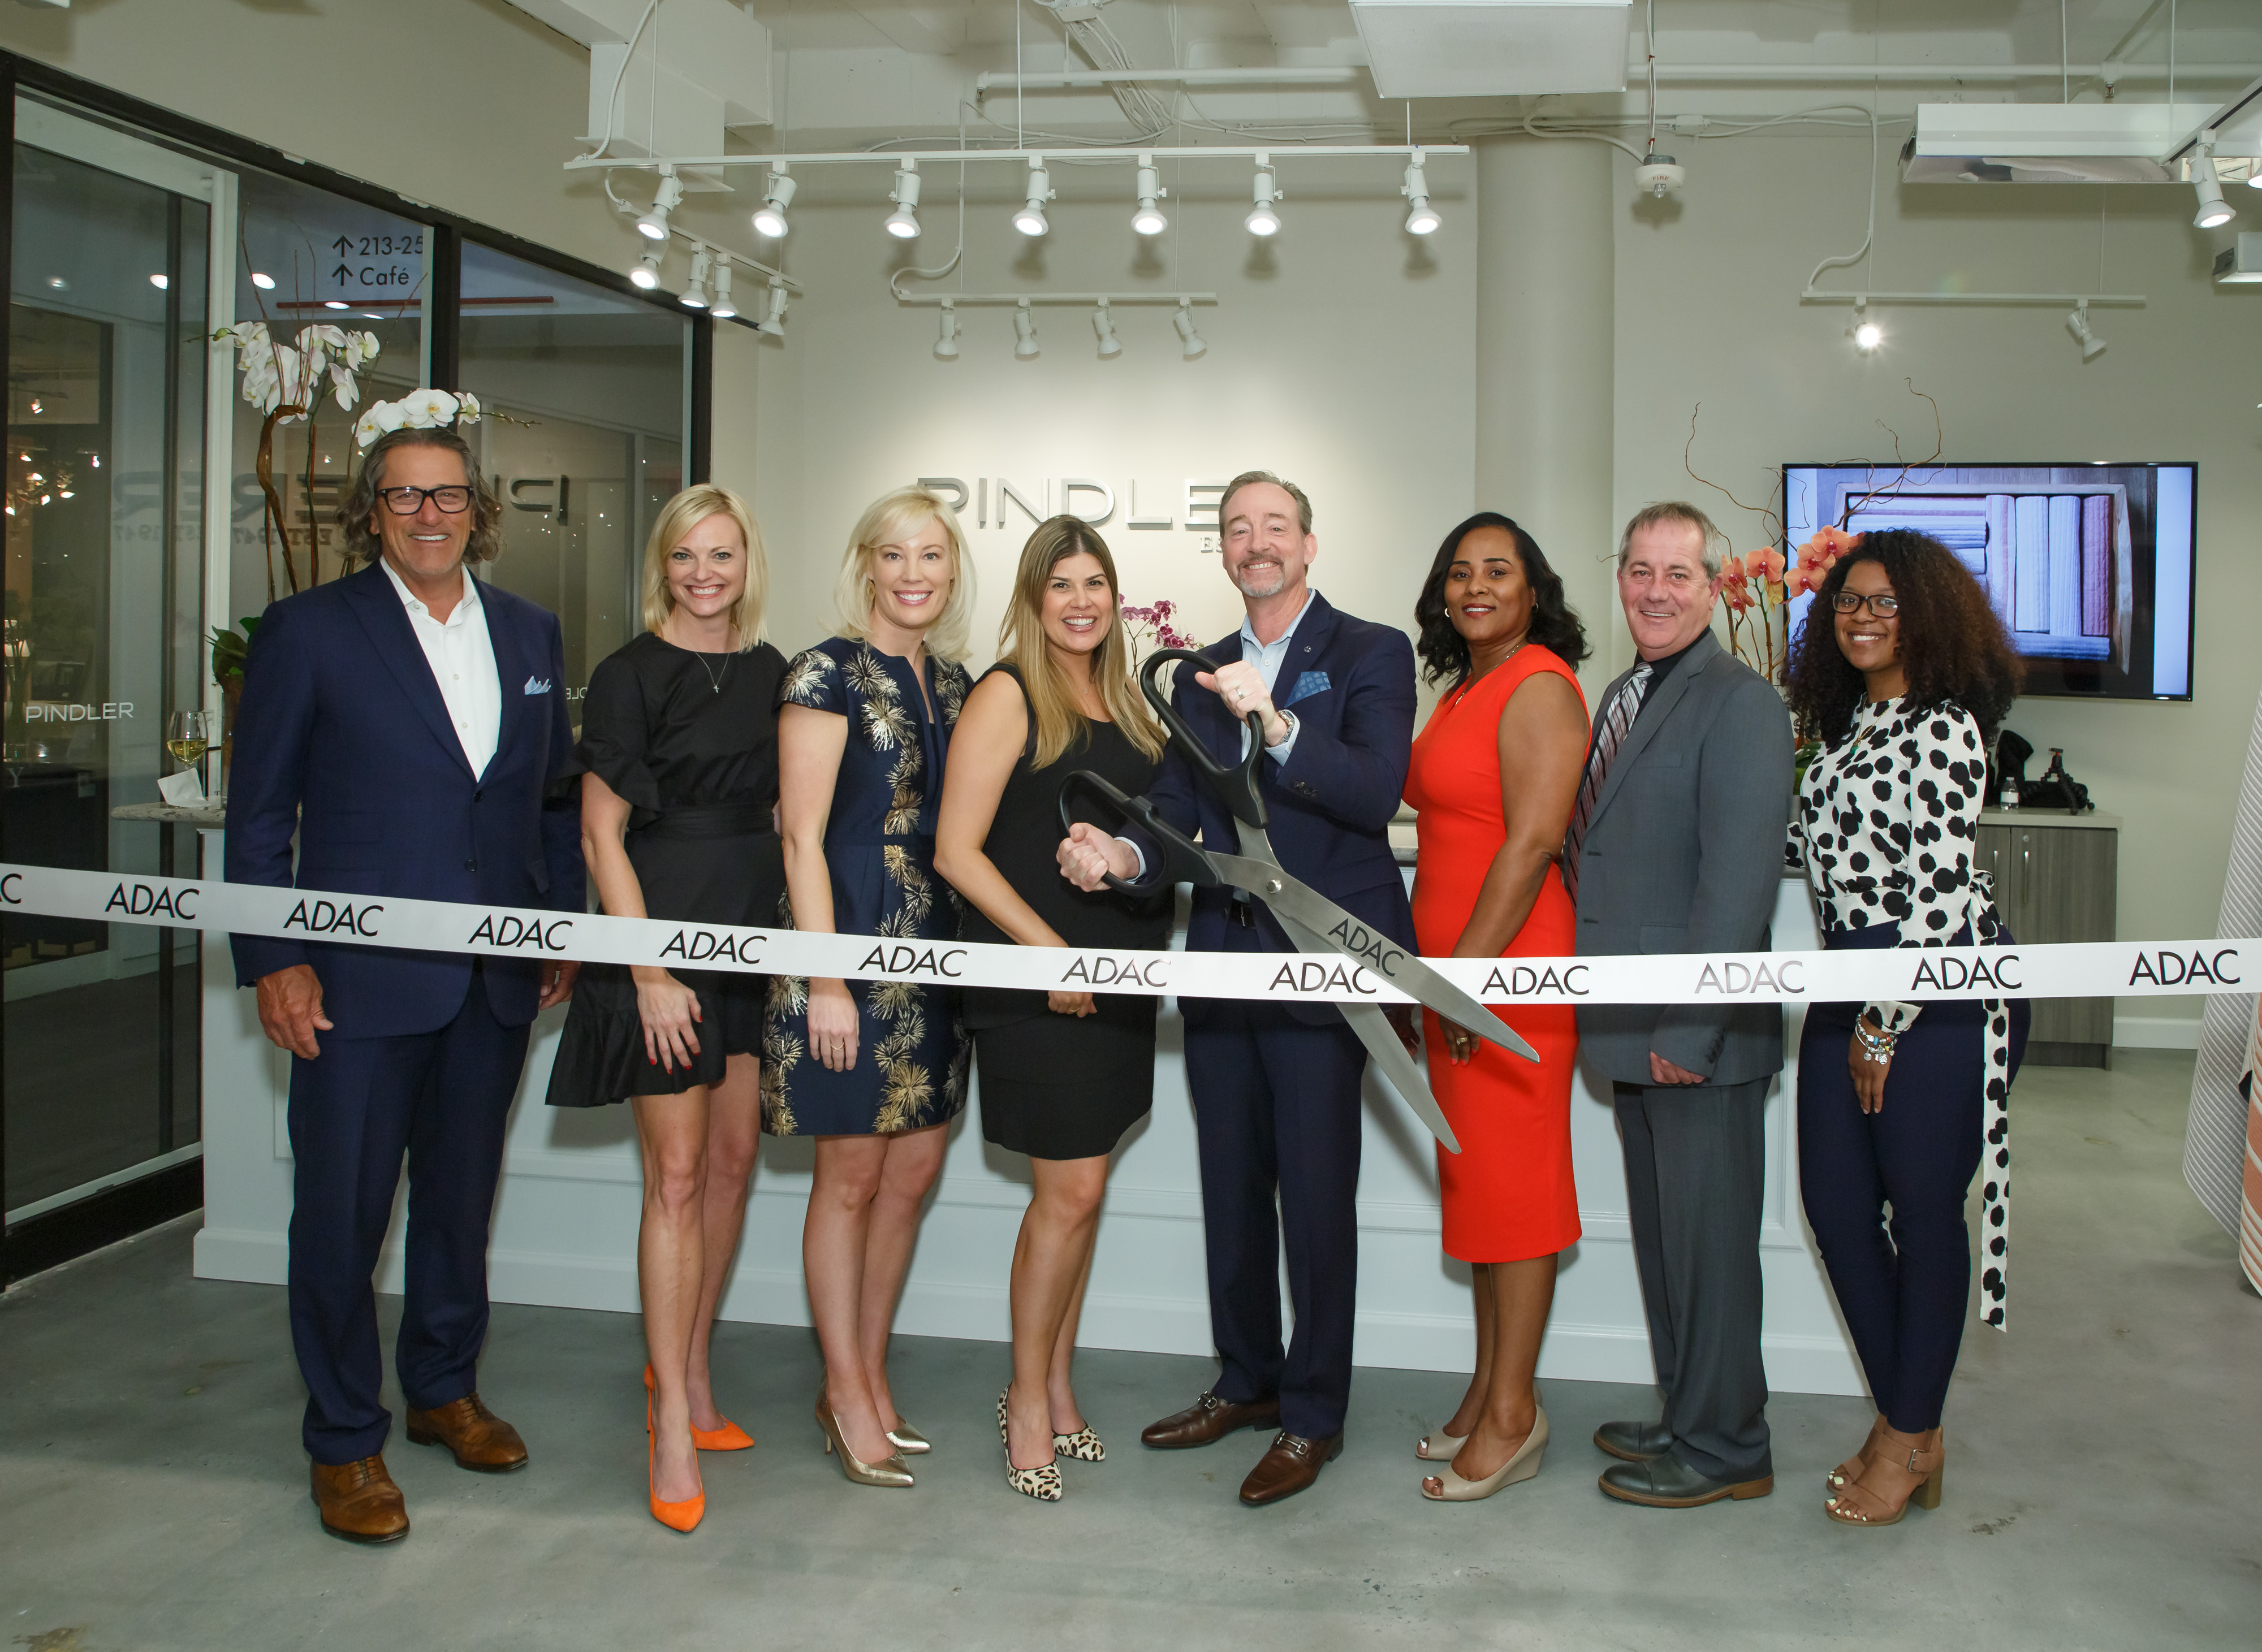 The Pindler team, with Bob Maricich and Katie Miner, celebrated the Pindler grand reopening with a ribbon cutting.